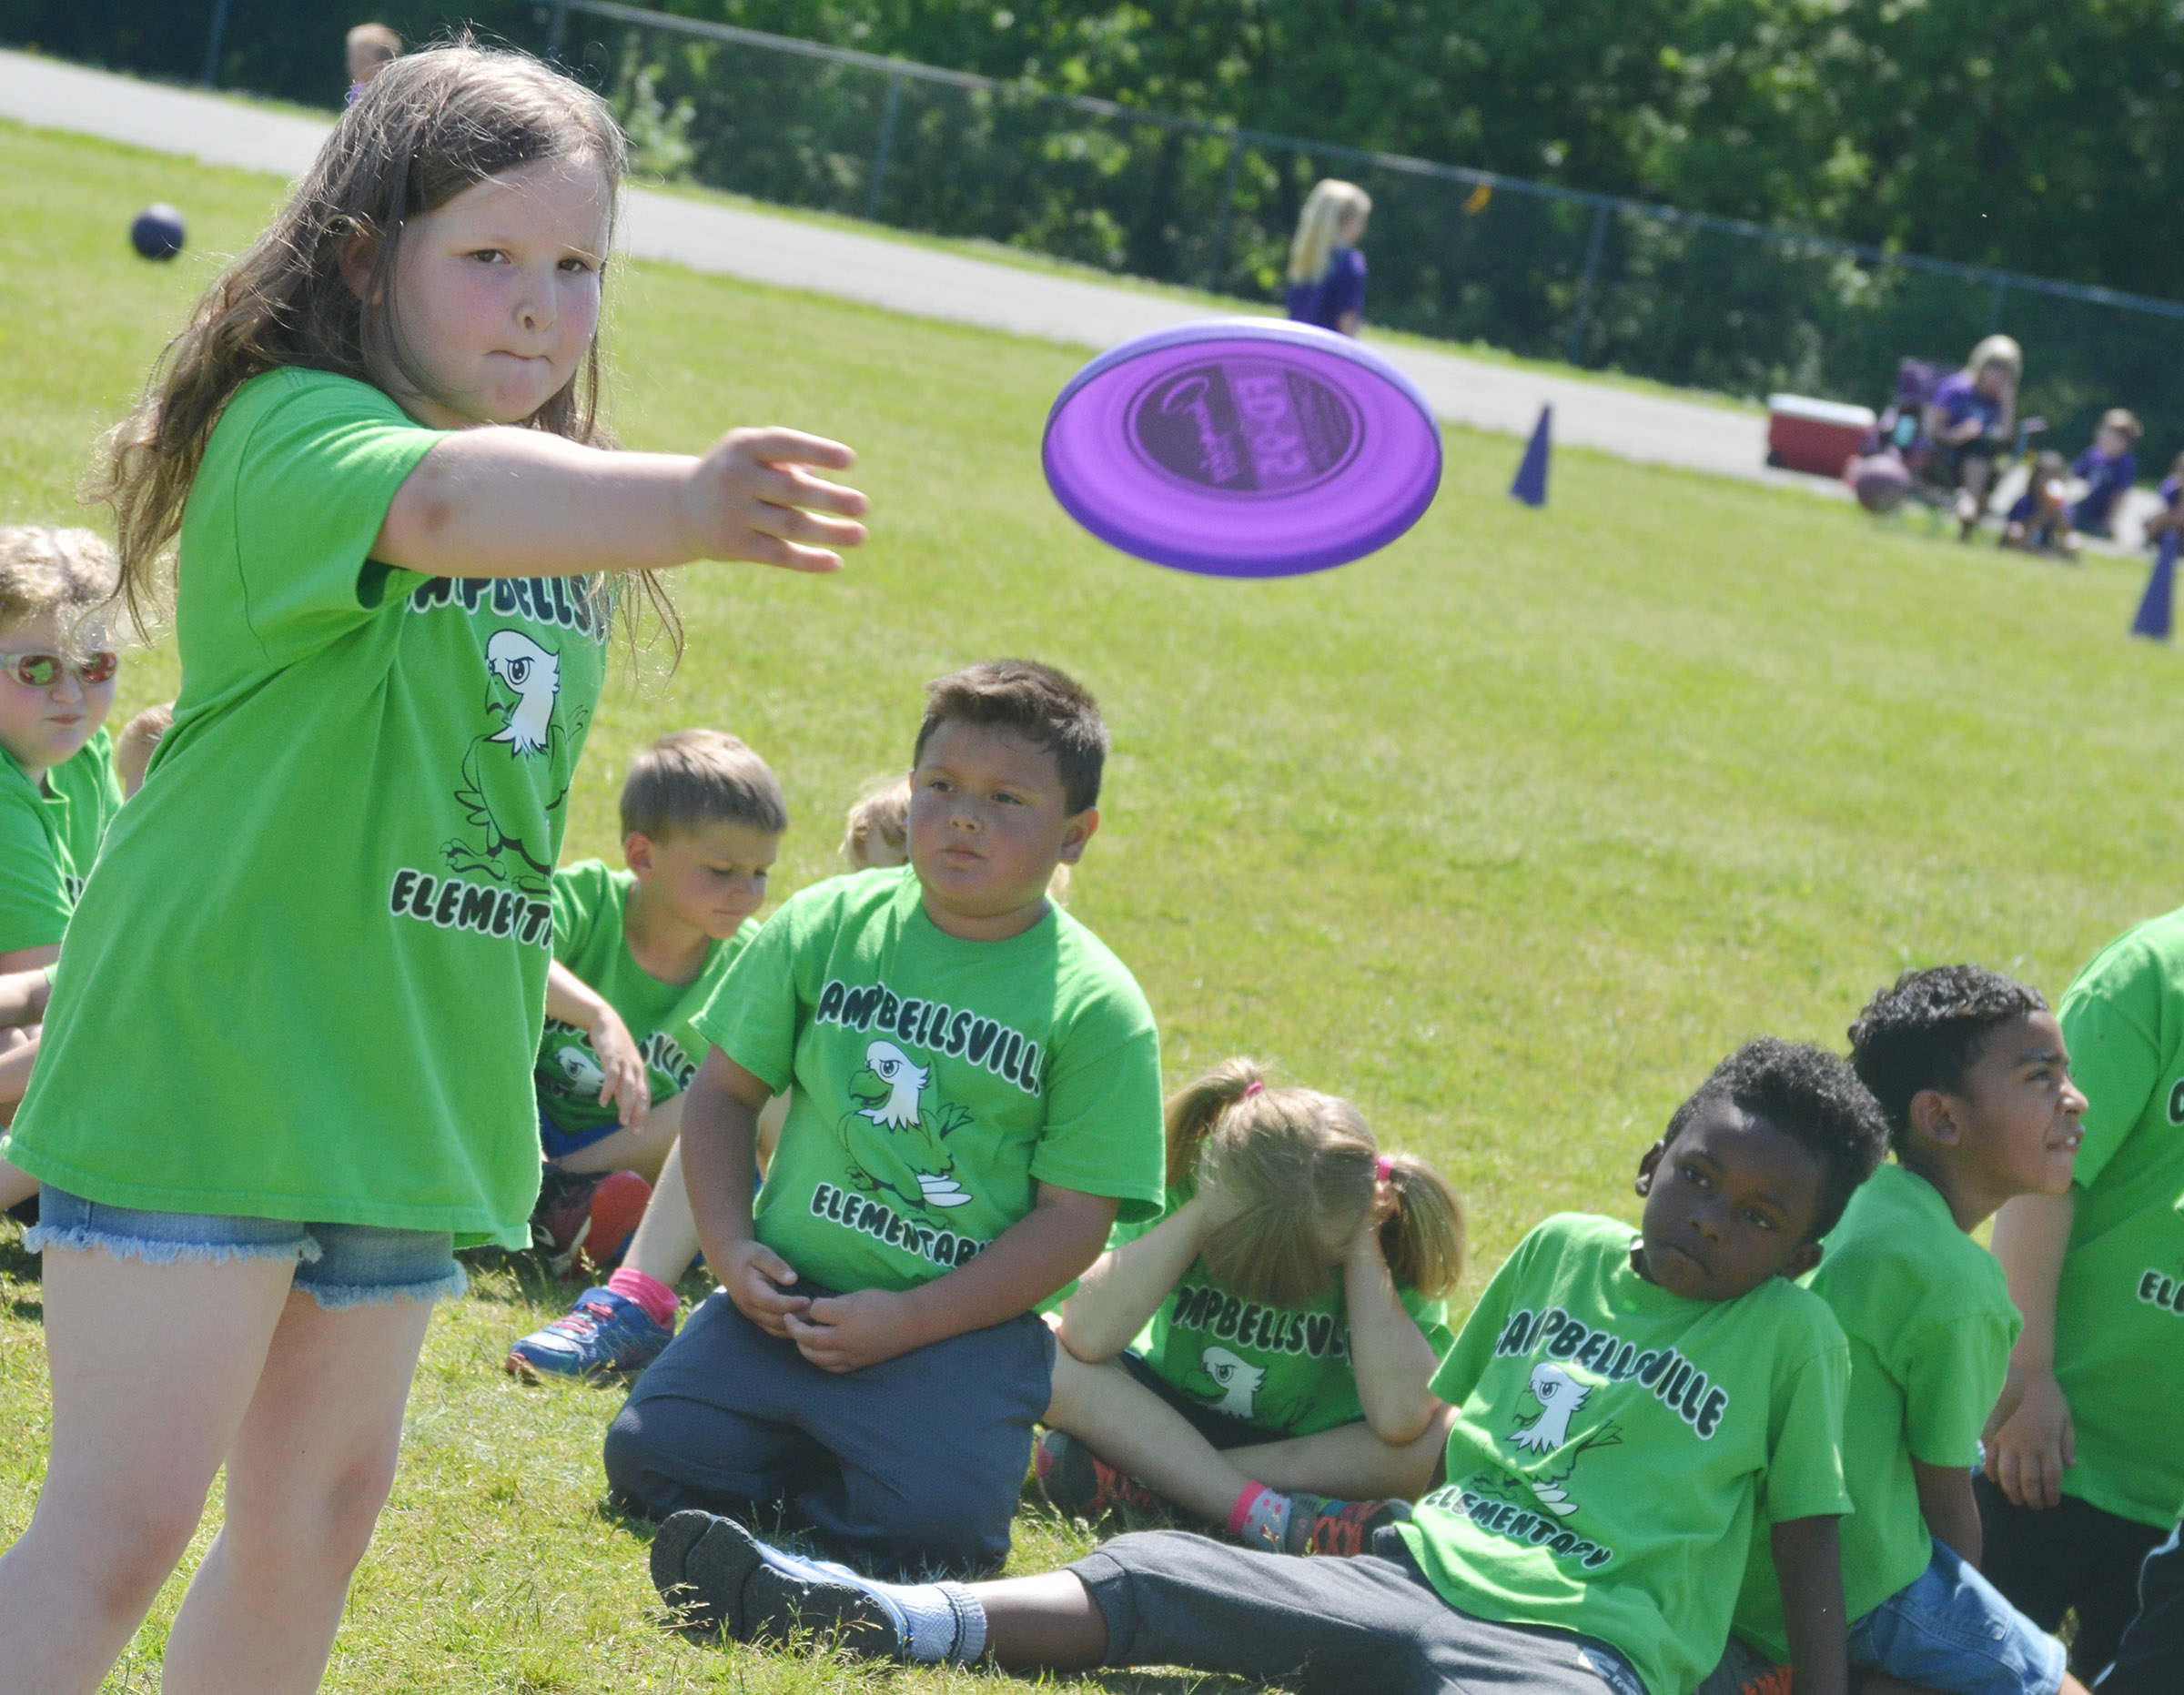 CES first-grader Kierra Maupin throws a Frisbee.